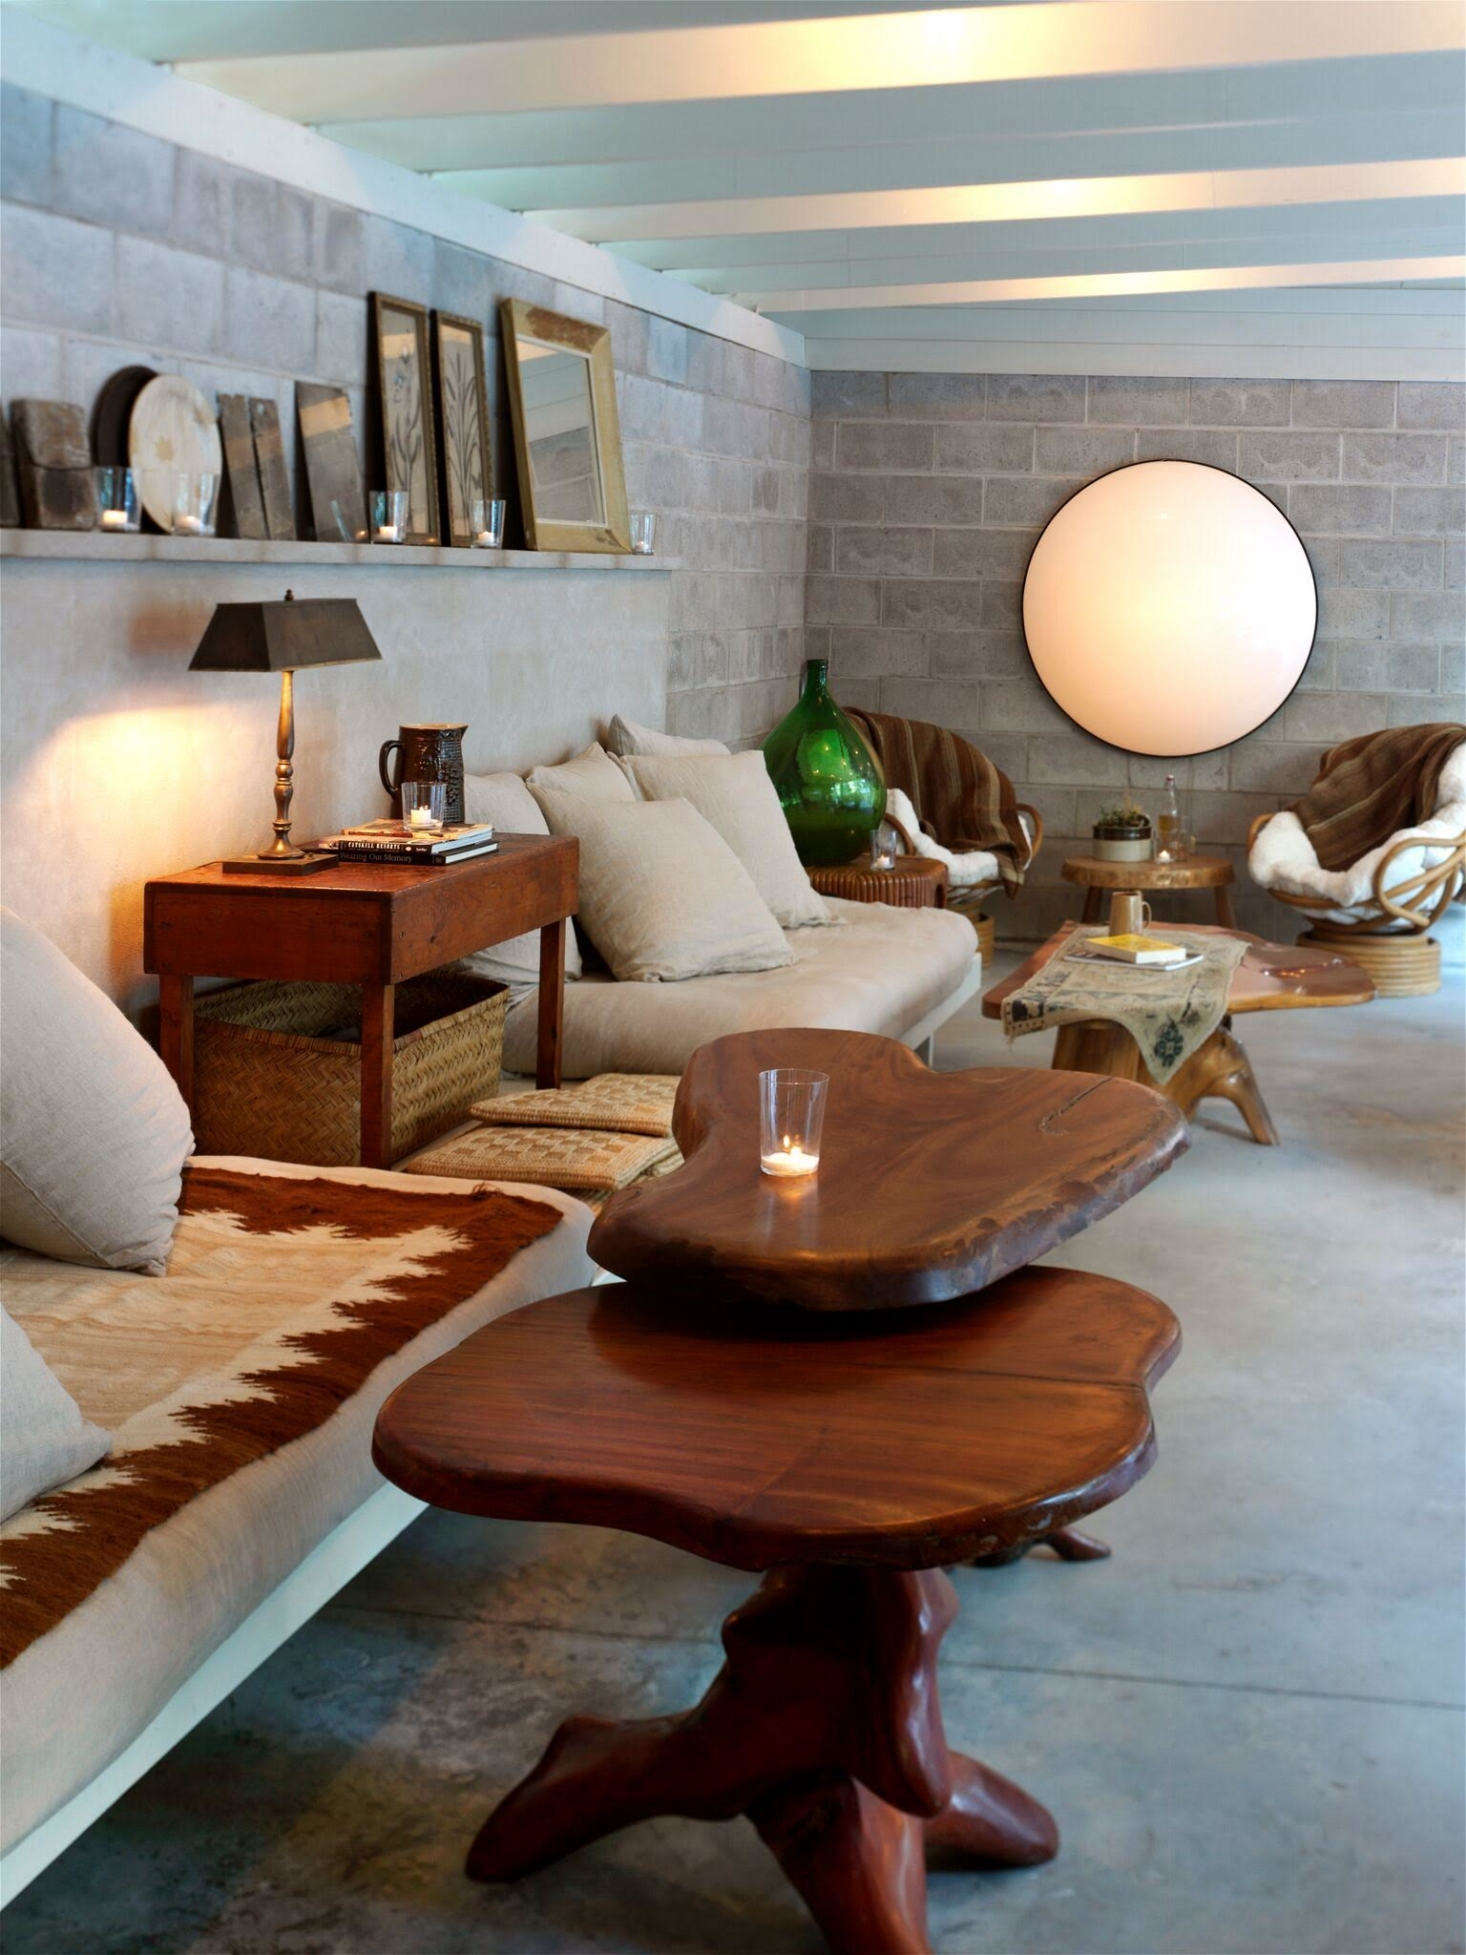 In the adjoining lounge, tree stump tables and masonry walls &#8